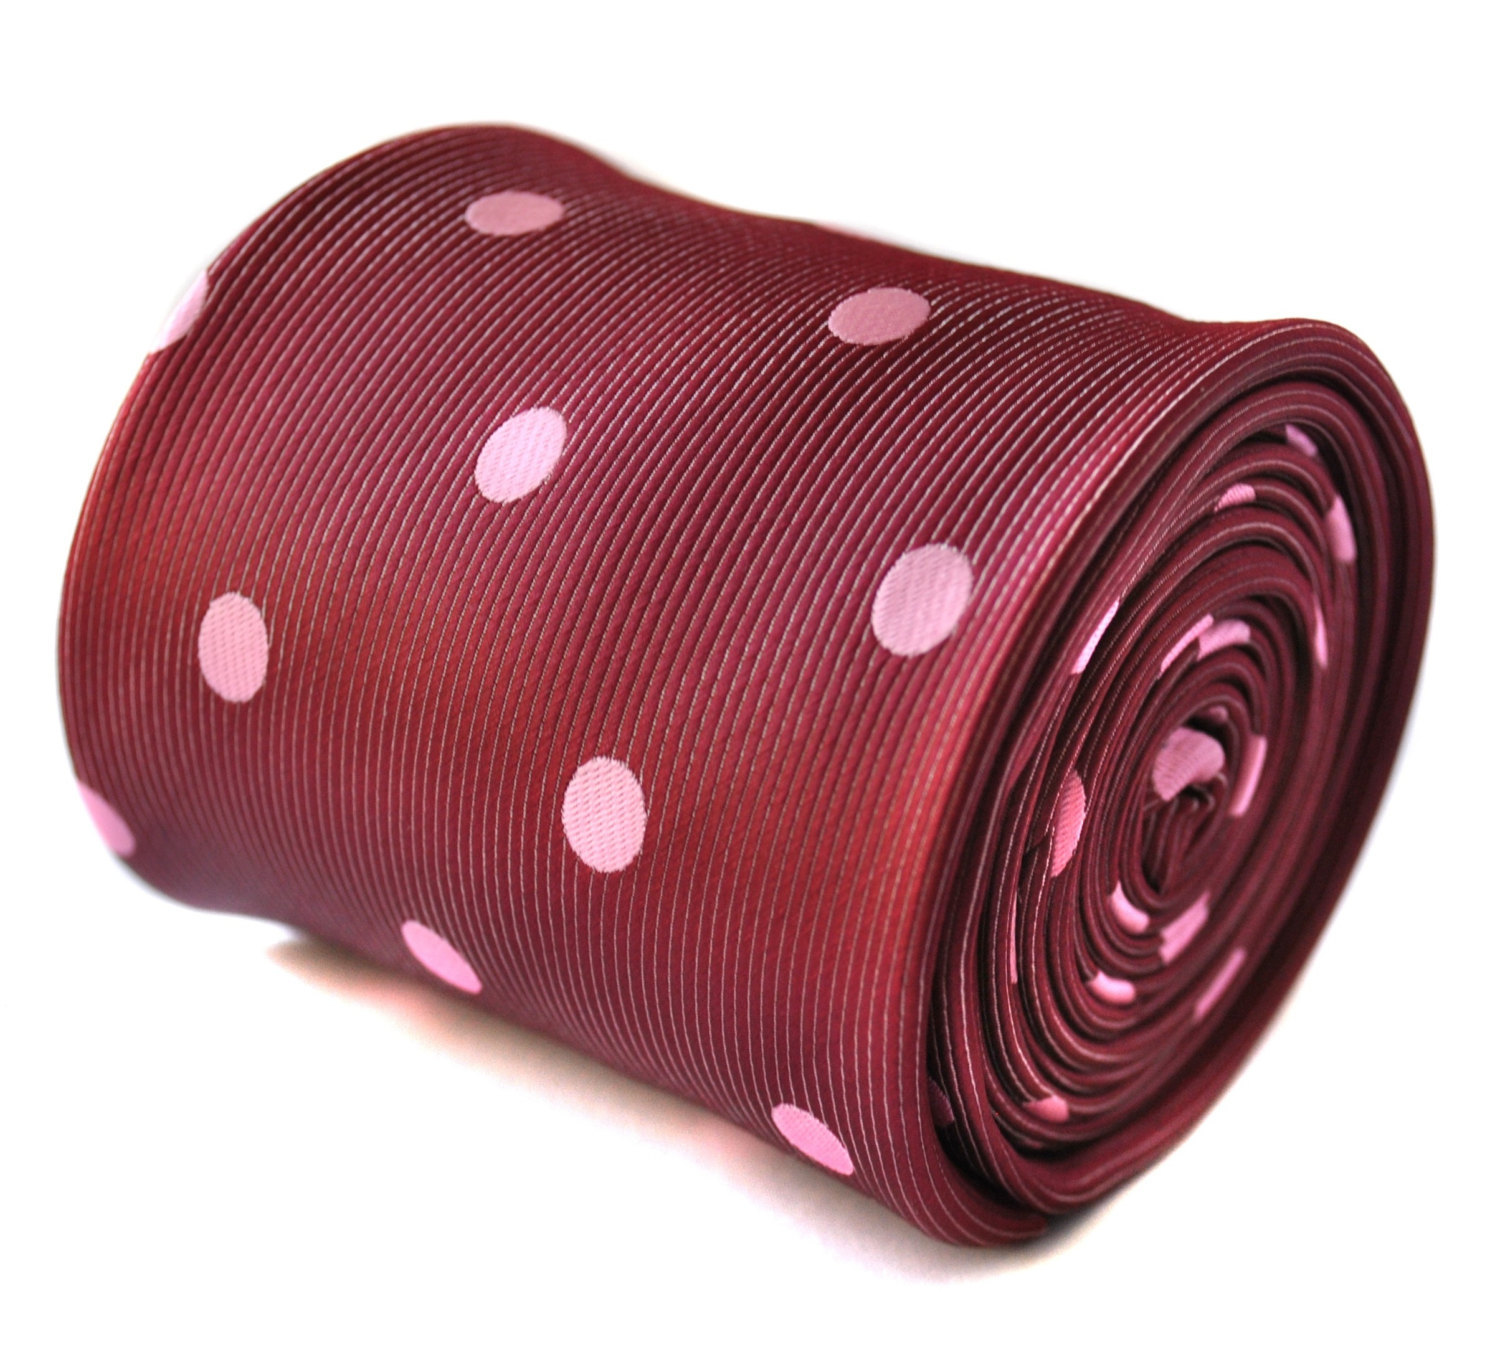 maroon and pink polka spot tie with signature floral design to the rear by Frede